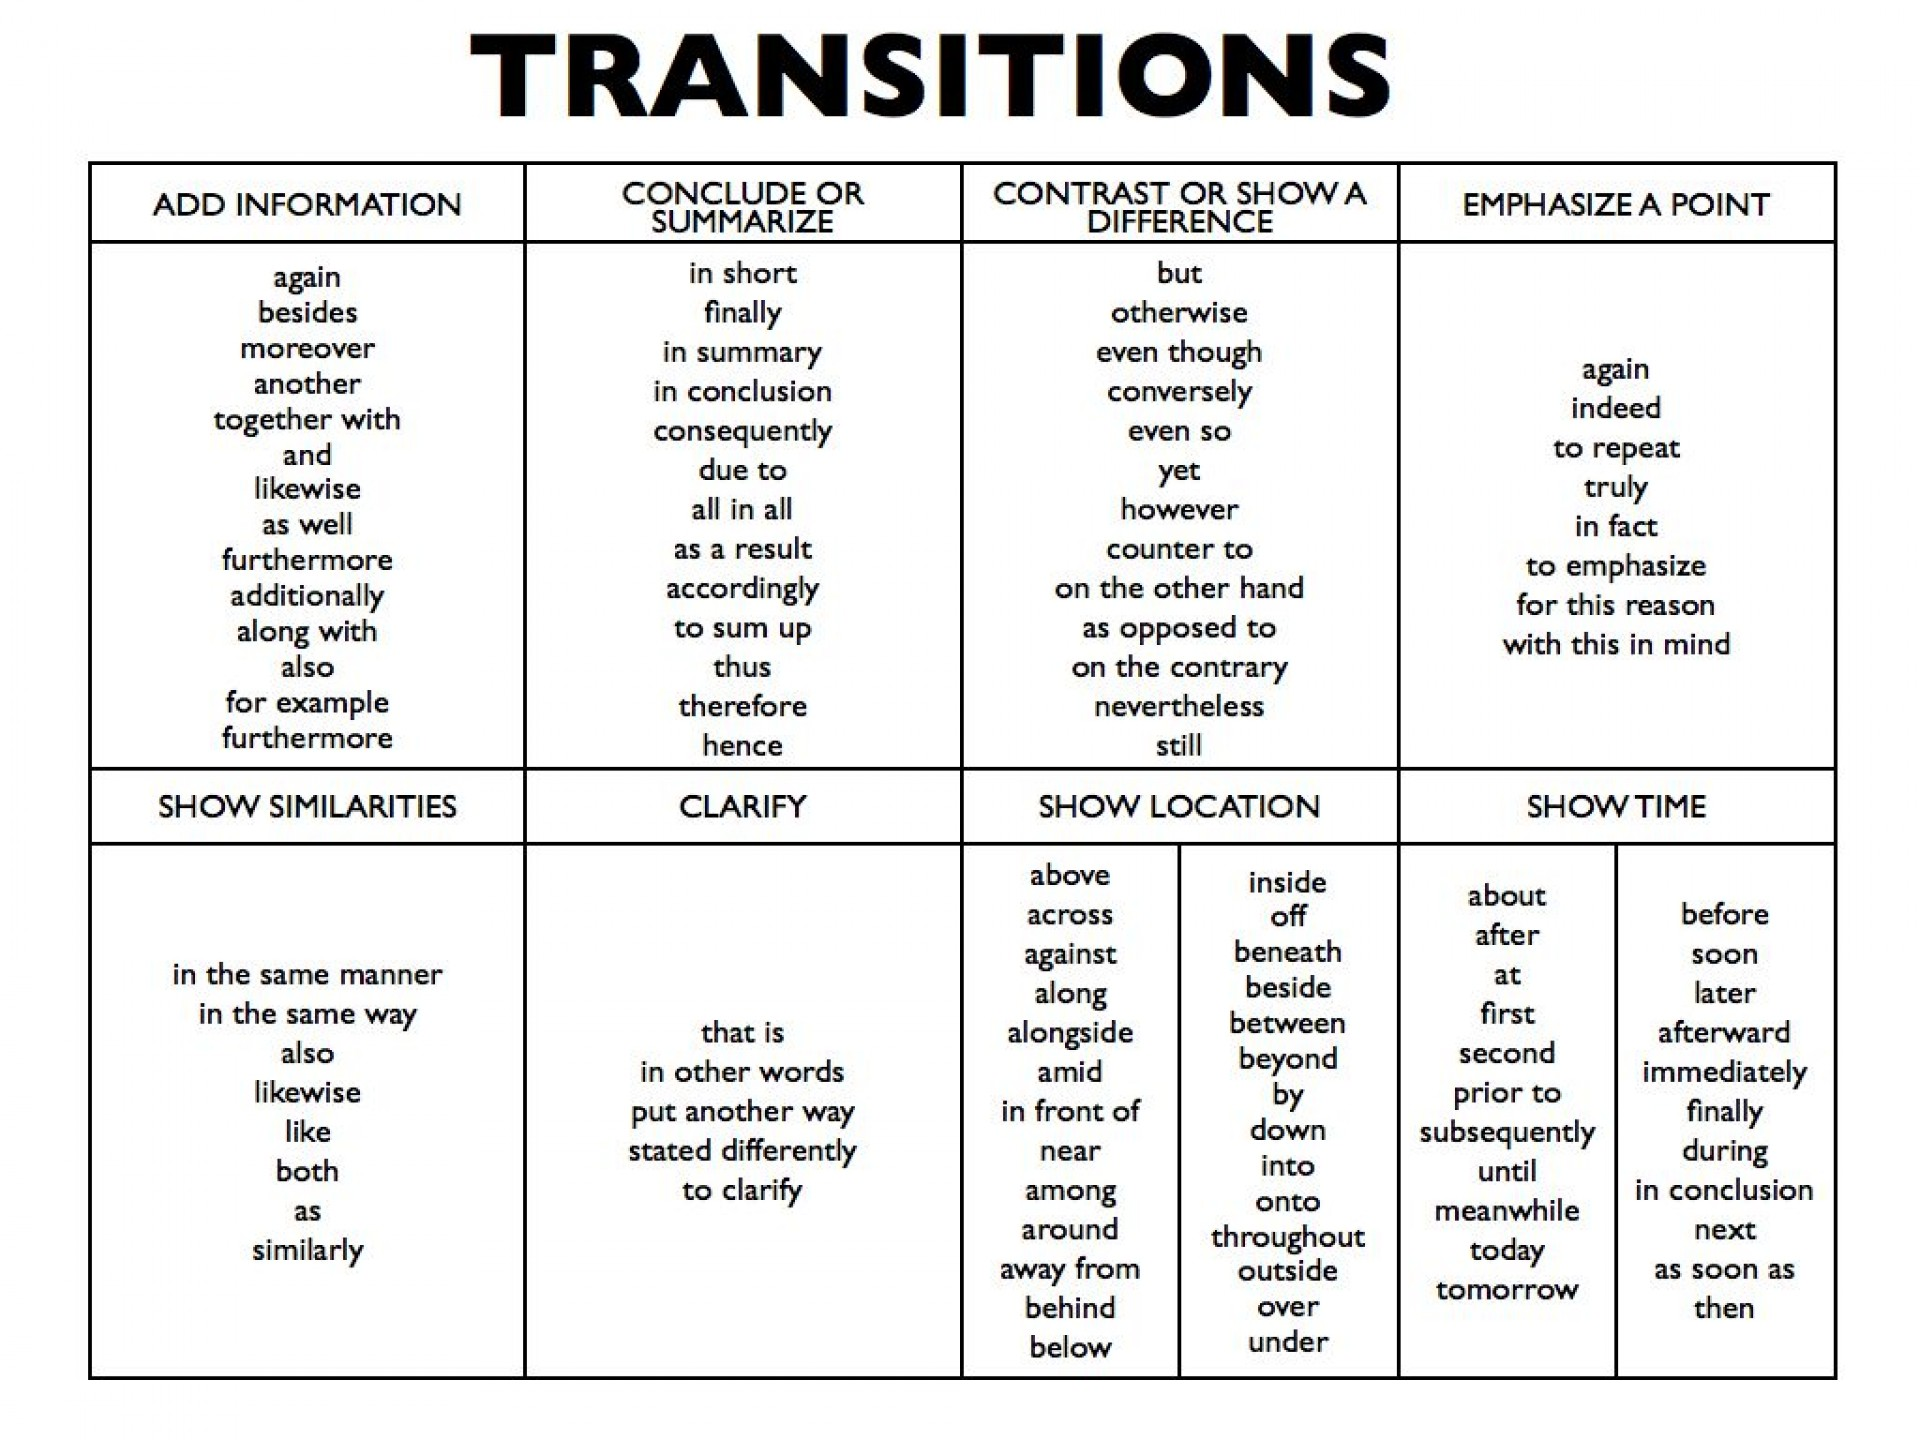 005 Essay Example Transitions 4995883 1 Orig Archaicawful Transition Words Introduction Persuasive List Writing Pdf 1920